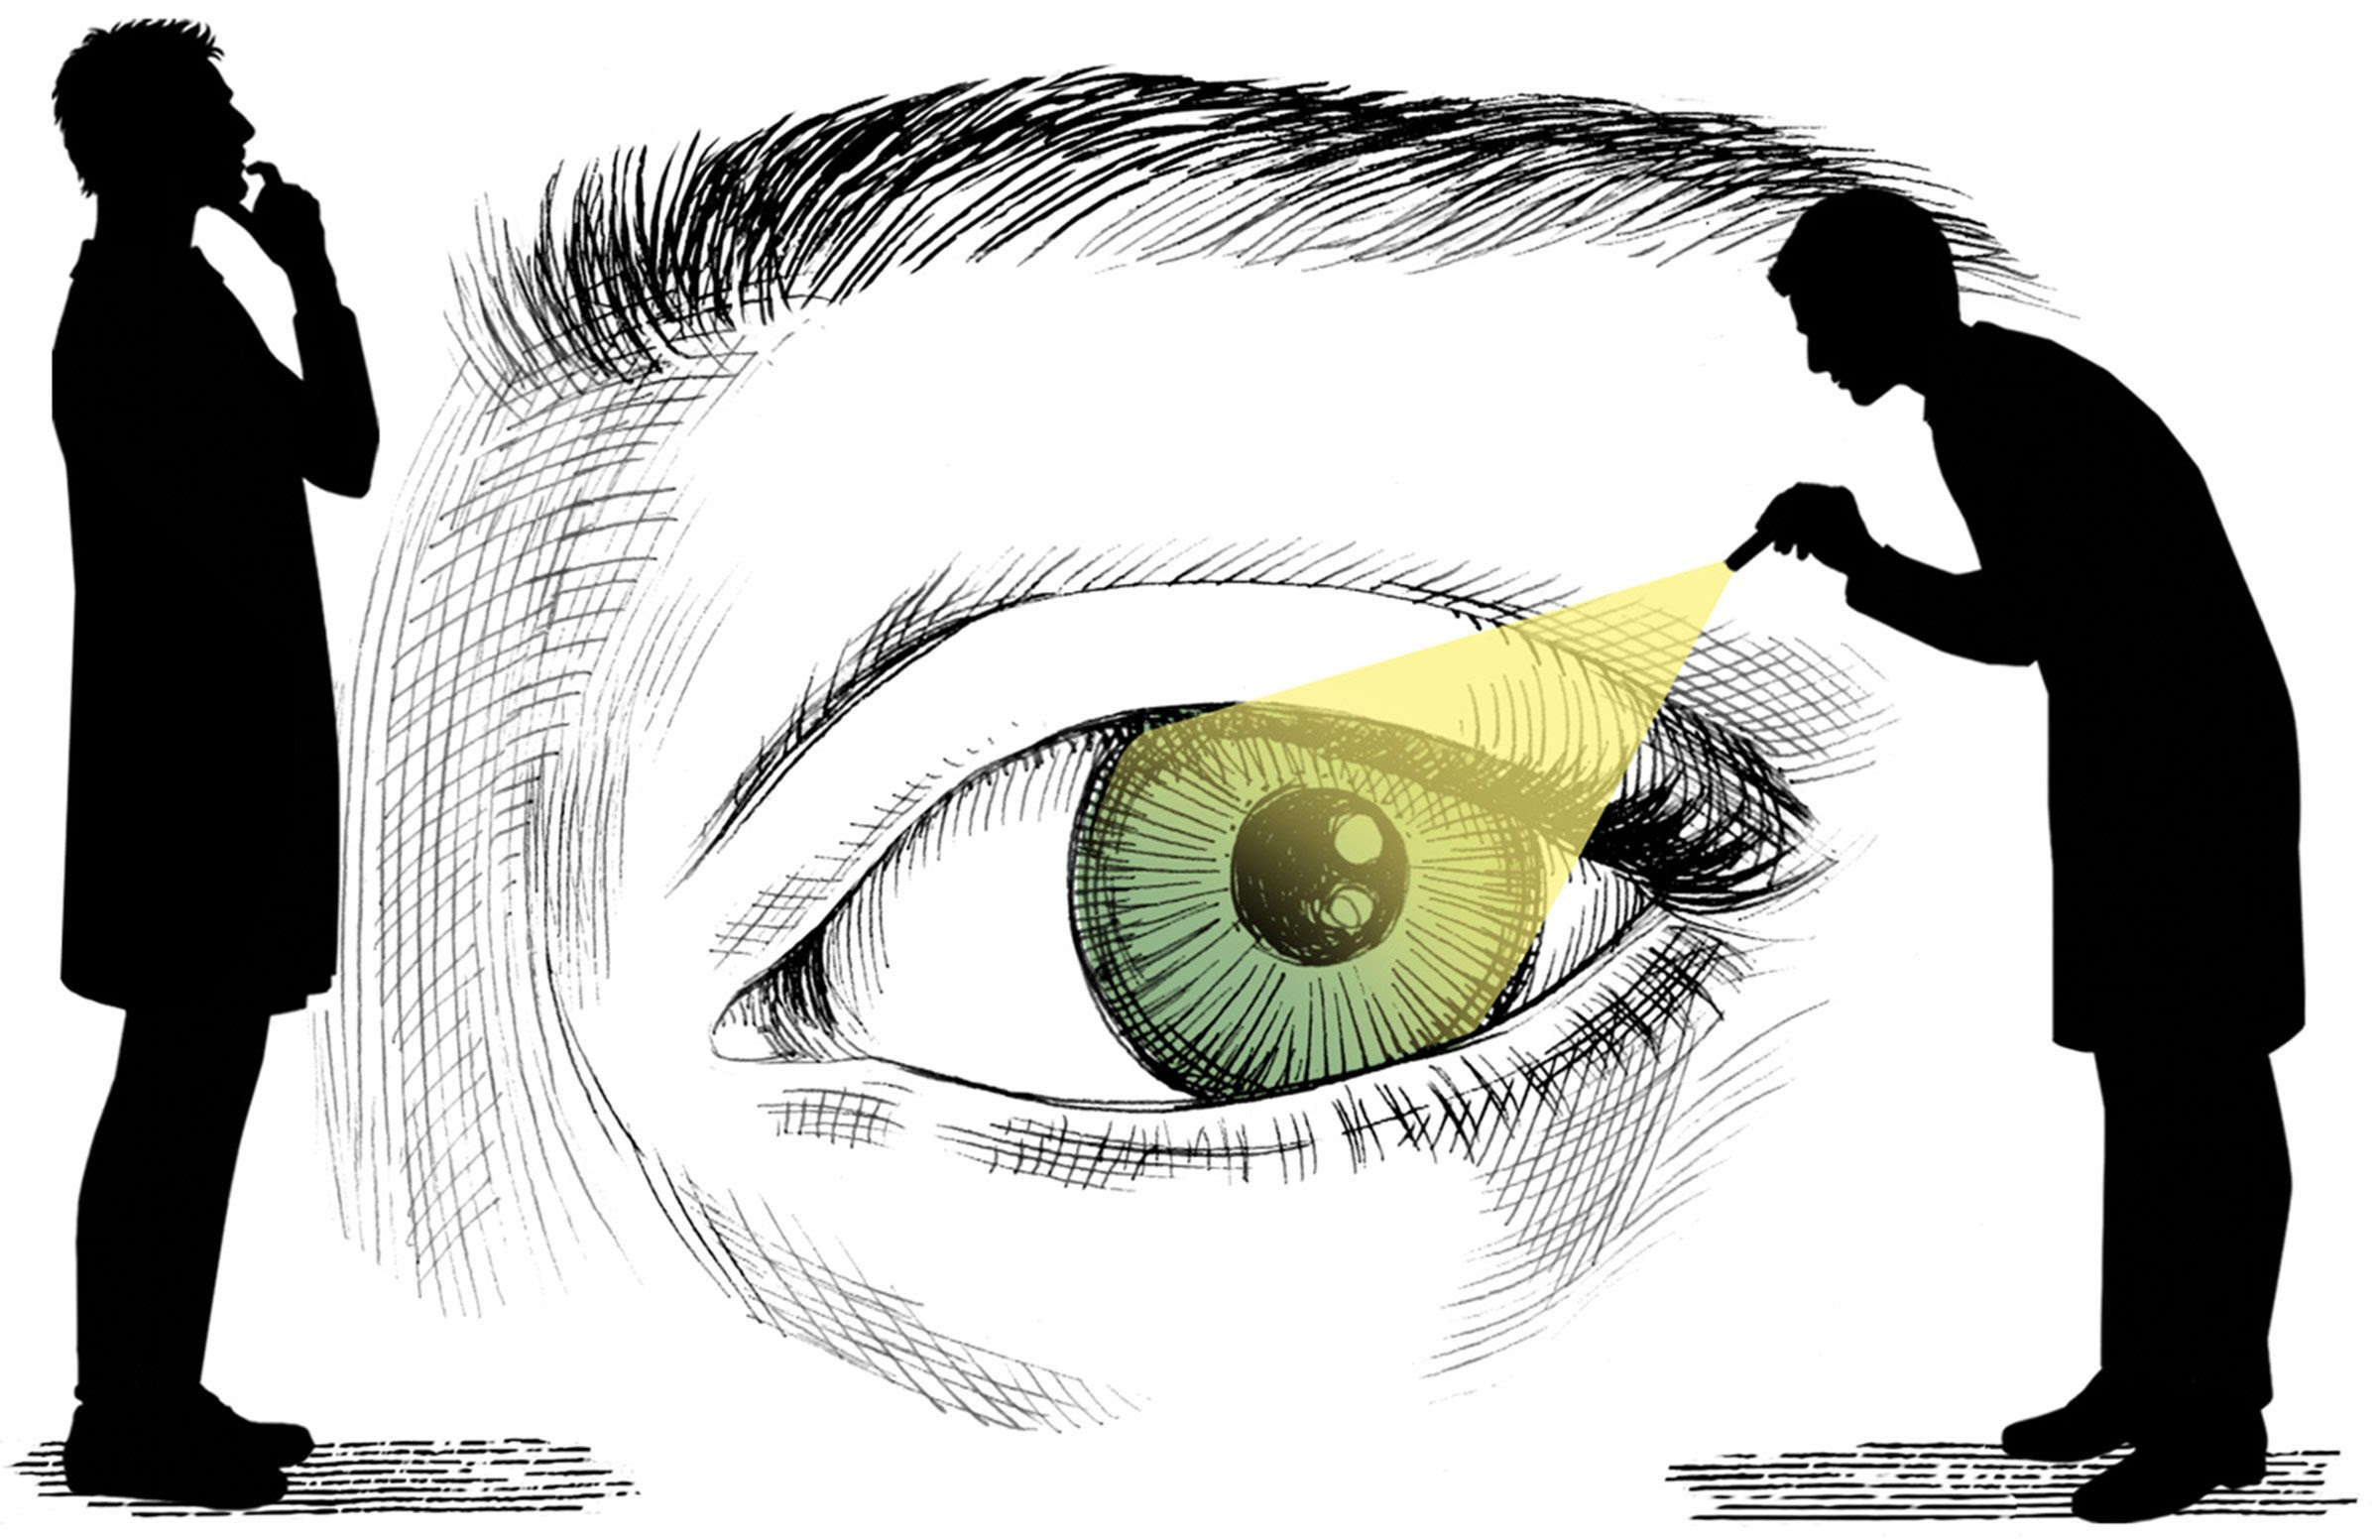 One Doctor Said I'd Go Blind Within 2 Weeks. But a Second Opinion Changed Everything.